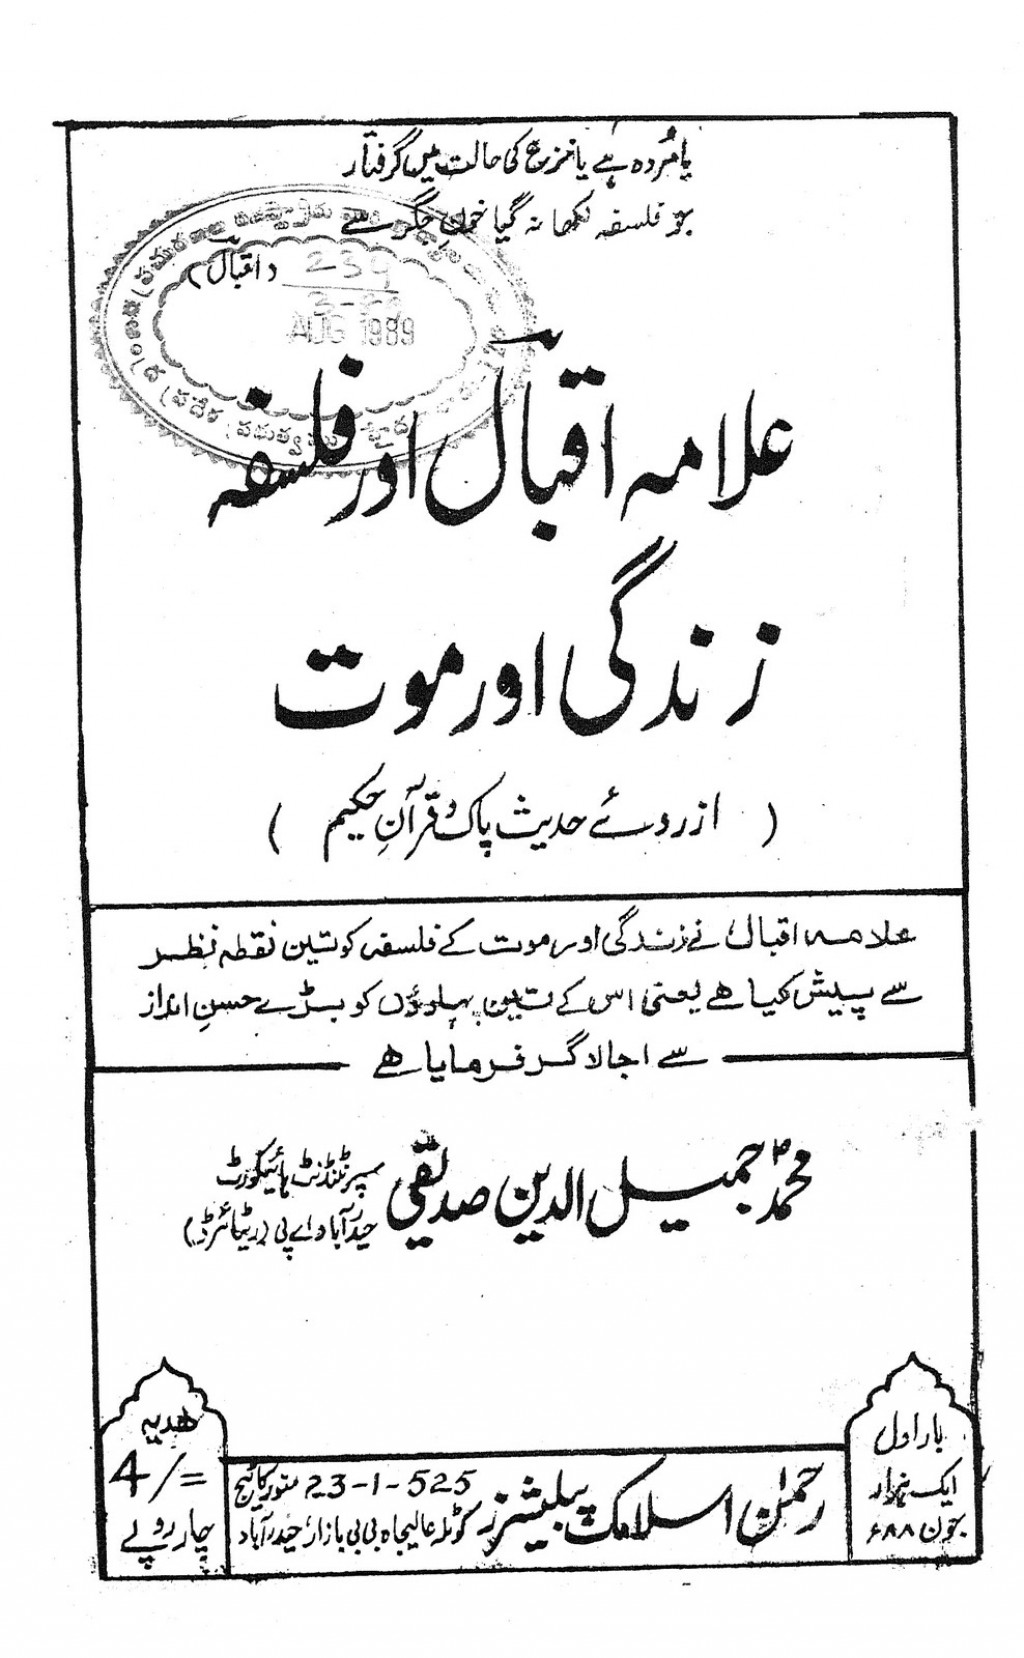 015 Allamaiqbalaurfalsafa Zindagi Aur Maut Urdu Essay Allama Iqbal Dreaded On In For Class 10 With Poetry Ka Shaheen Headings And Large